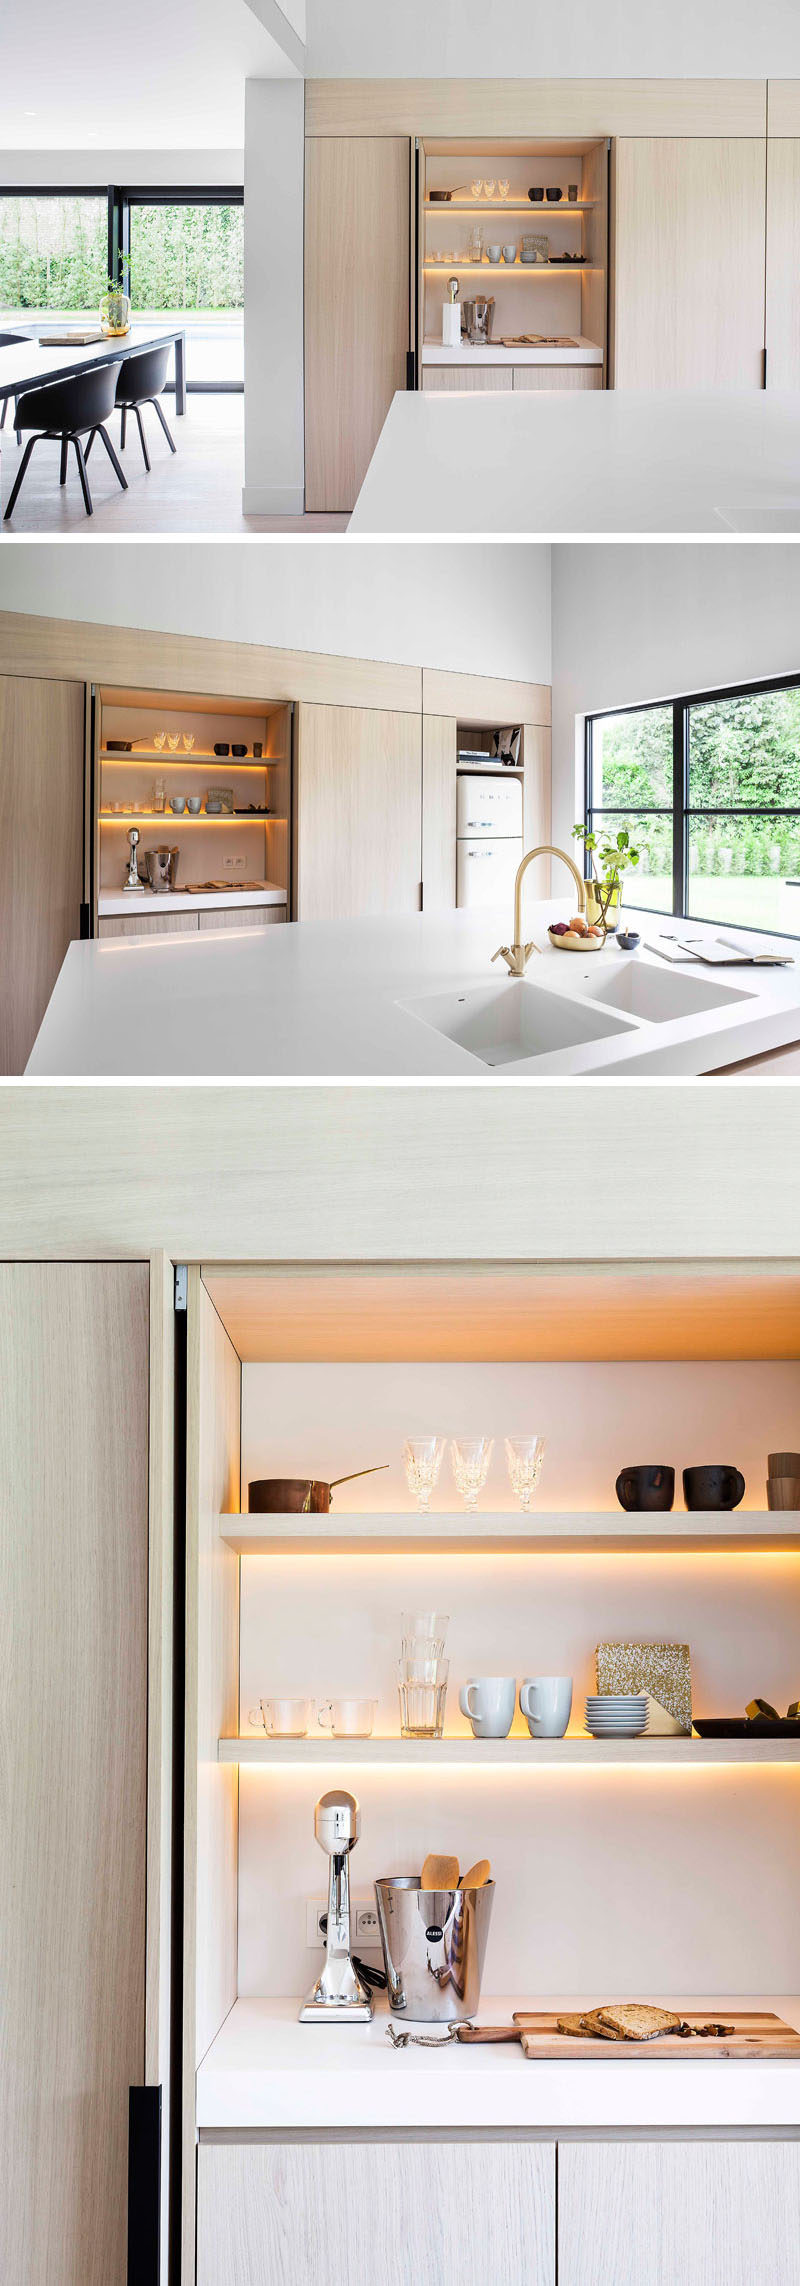 In this modern kitchen, minimalist black cabinet hardware allows you to easily open the cabinet, with the doors folding away within the cabinetry. One design feature hidden within this particular cabinet with an internal countertop, is the LED lighting that's hidden behind the shelves to brightens up the space without having to turn on the main kitchen lights.